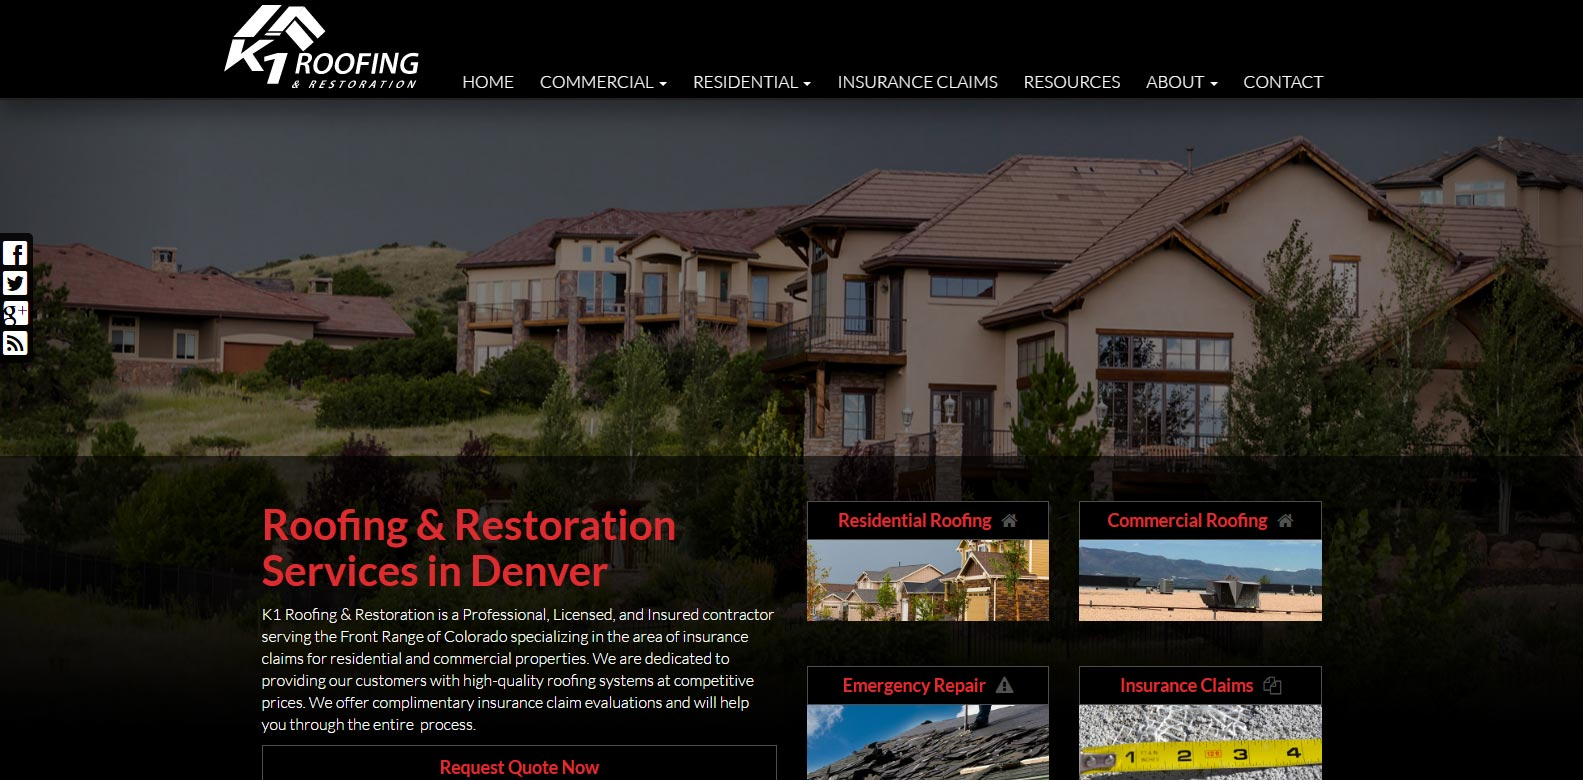 New Website Launched: K1 Roofing & Restoration